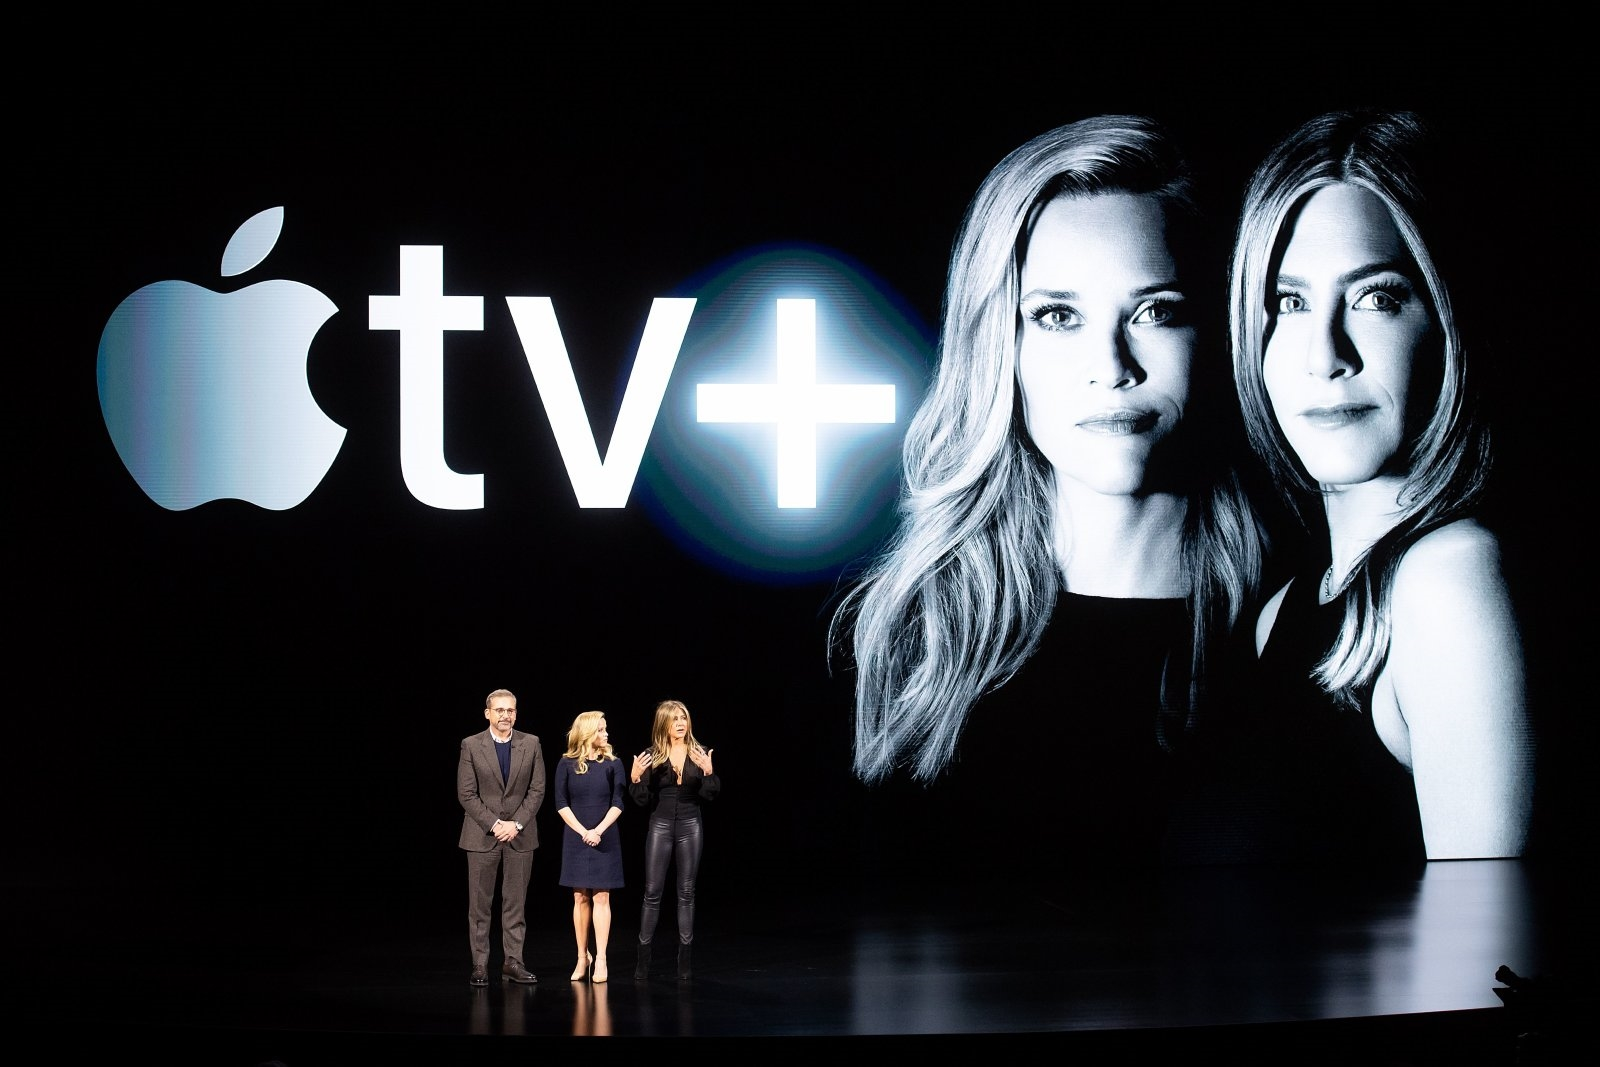 Apple won't offer a Netflix-like quantity of TV shows | DeviceDaily.com